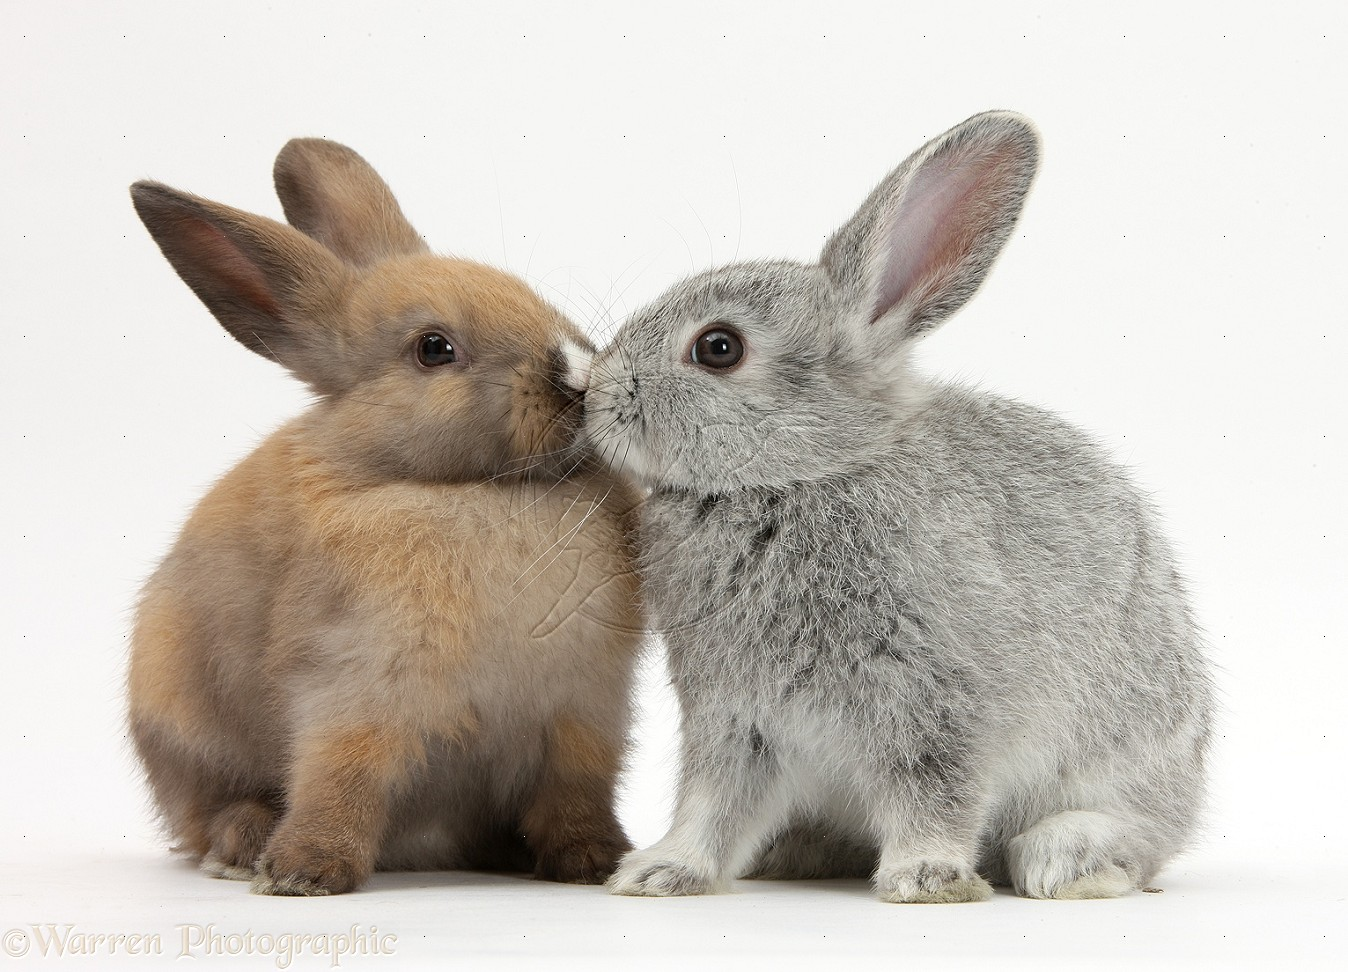 Dating rabbits